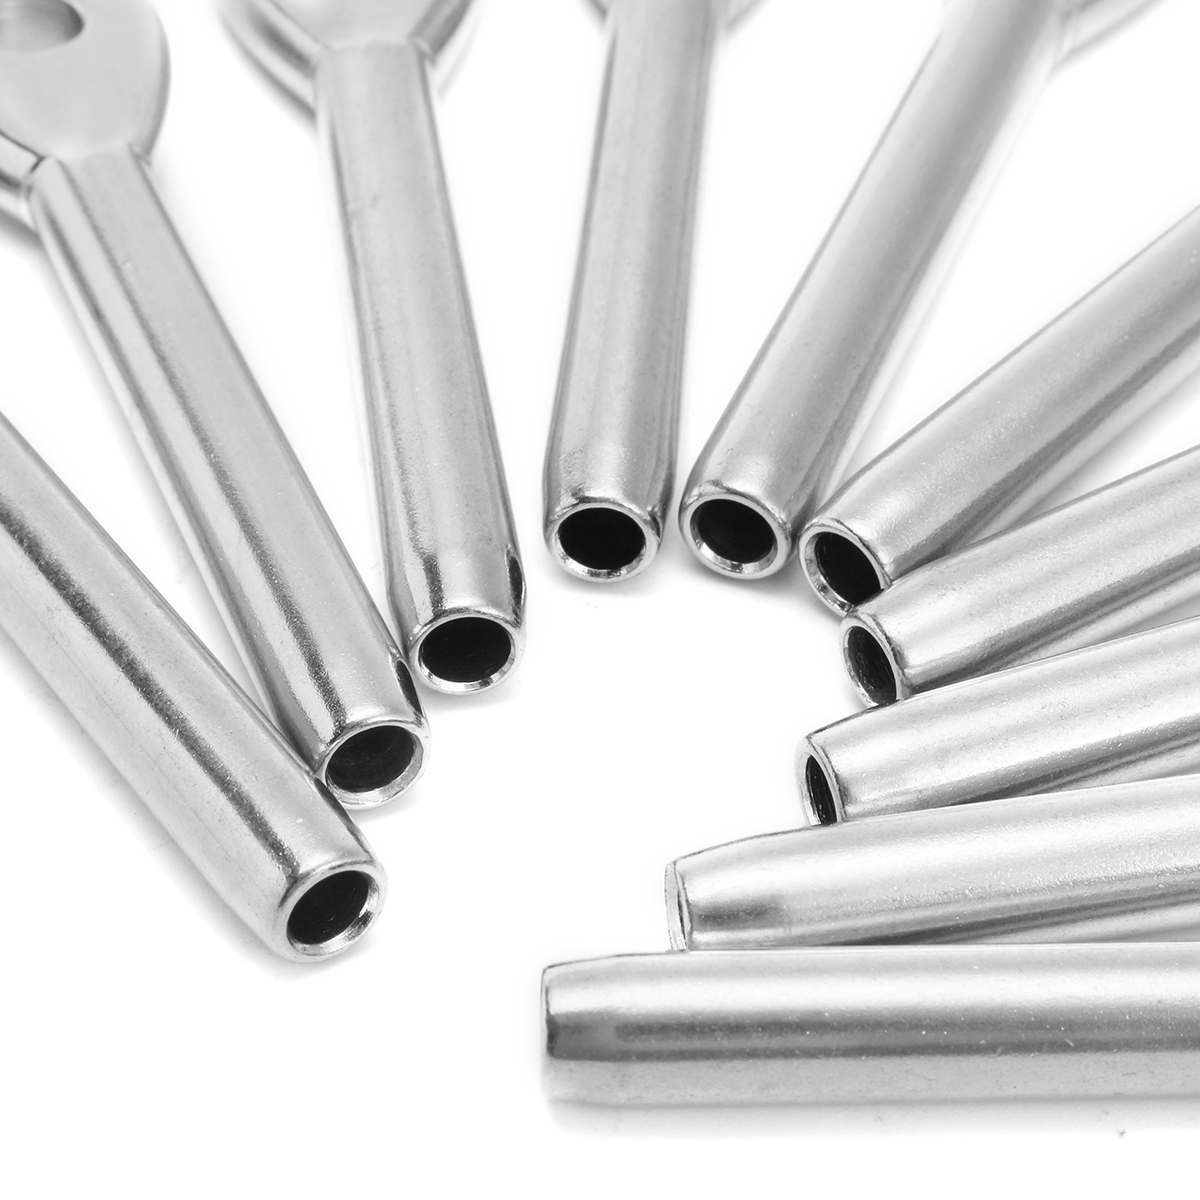 10Pcs T316 Stainless Steel Swage Eye Terminal for 3/16 Inch Cable ...